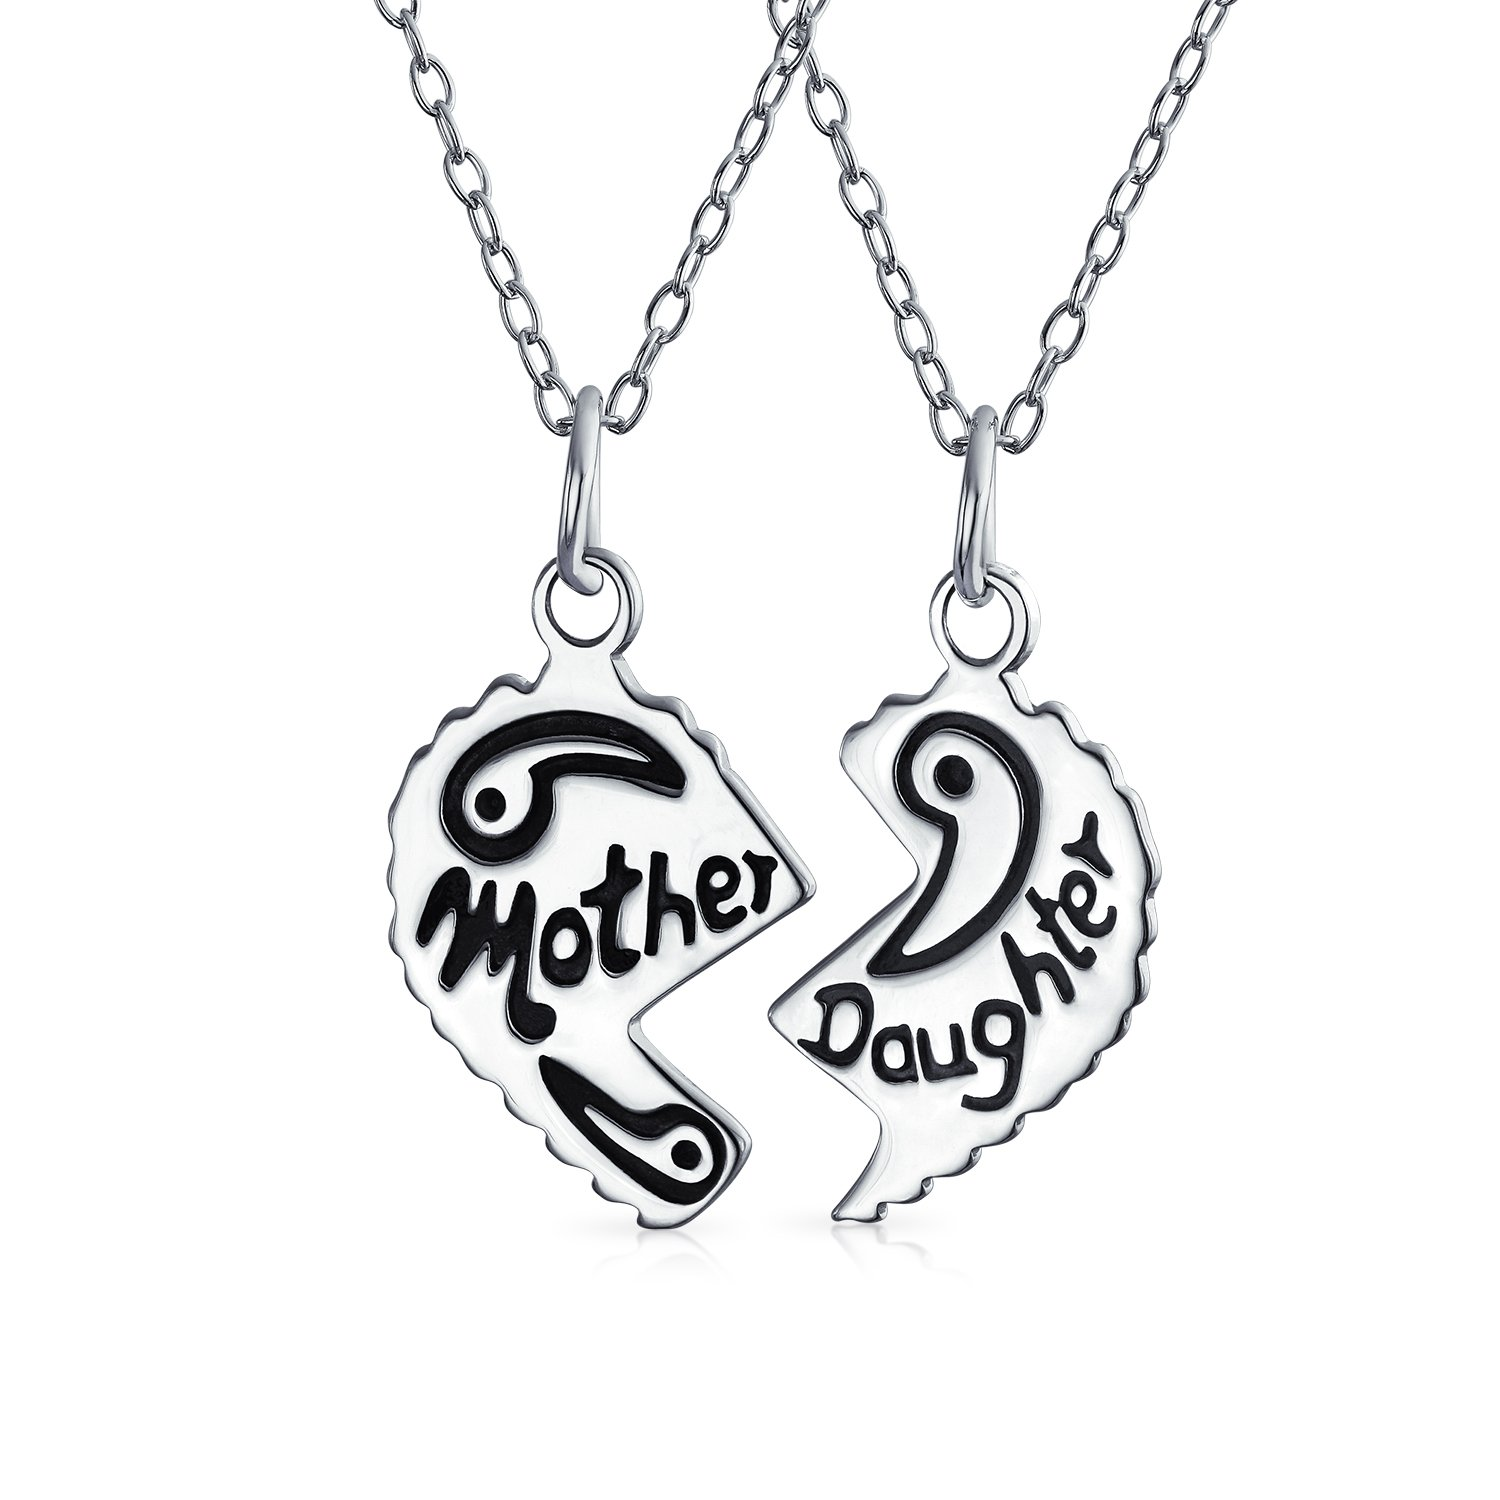 amazon bling jewelry mother daughter split heart pendant BMW 535I M Sport Review amazon bling jewelry mother daughter split heart pendant sterling silver necklace set 16 inches jewelry